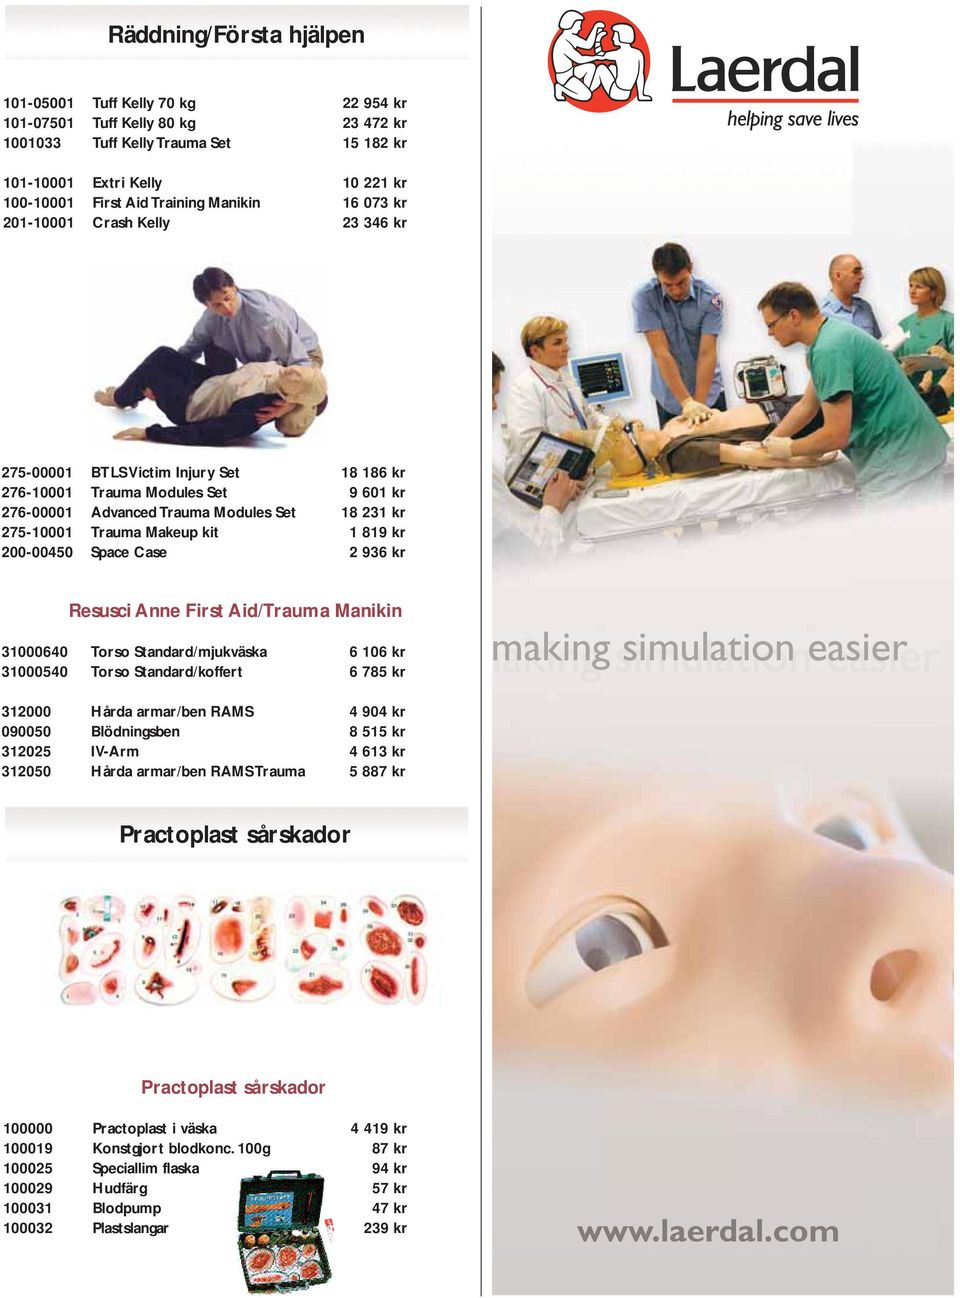 Trauma Makeup kit 1 819 kr 200-00450 Space Case 2 936 kr Resusci Anne First Aid/Trauma Manikin 31000640 Torso Standard/mjukväska 6 106 kr 31000540 Torso Standard/koffert 6 785 kr making simulation